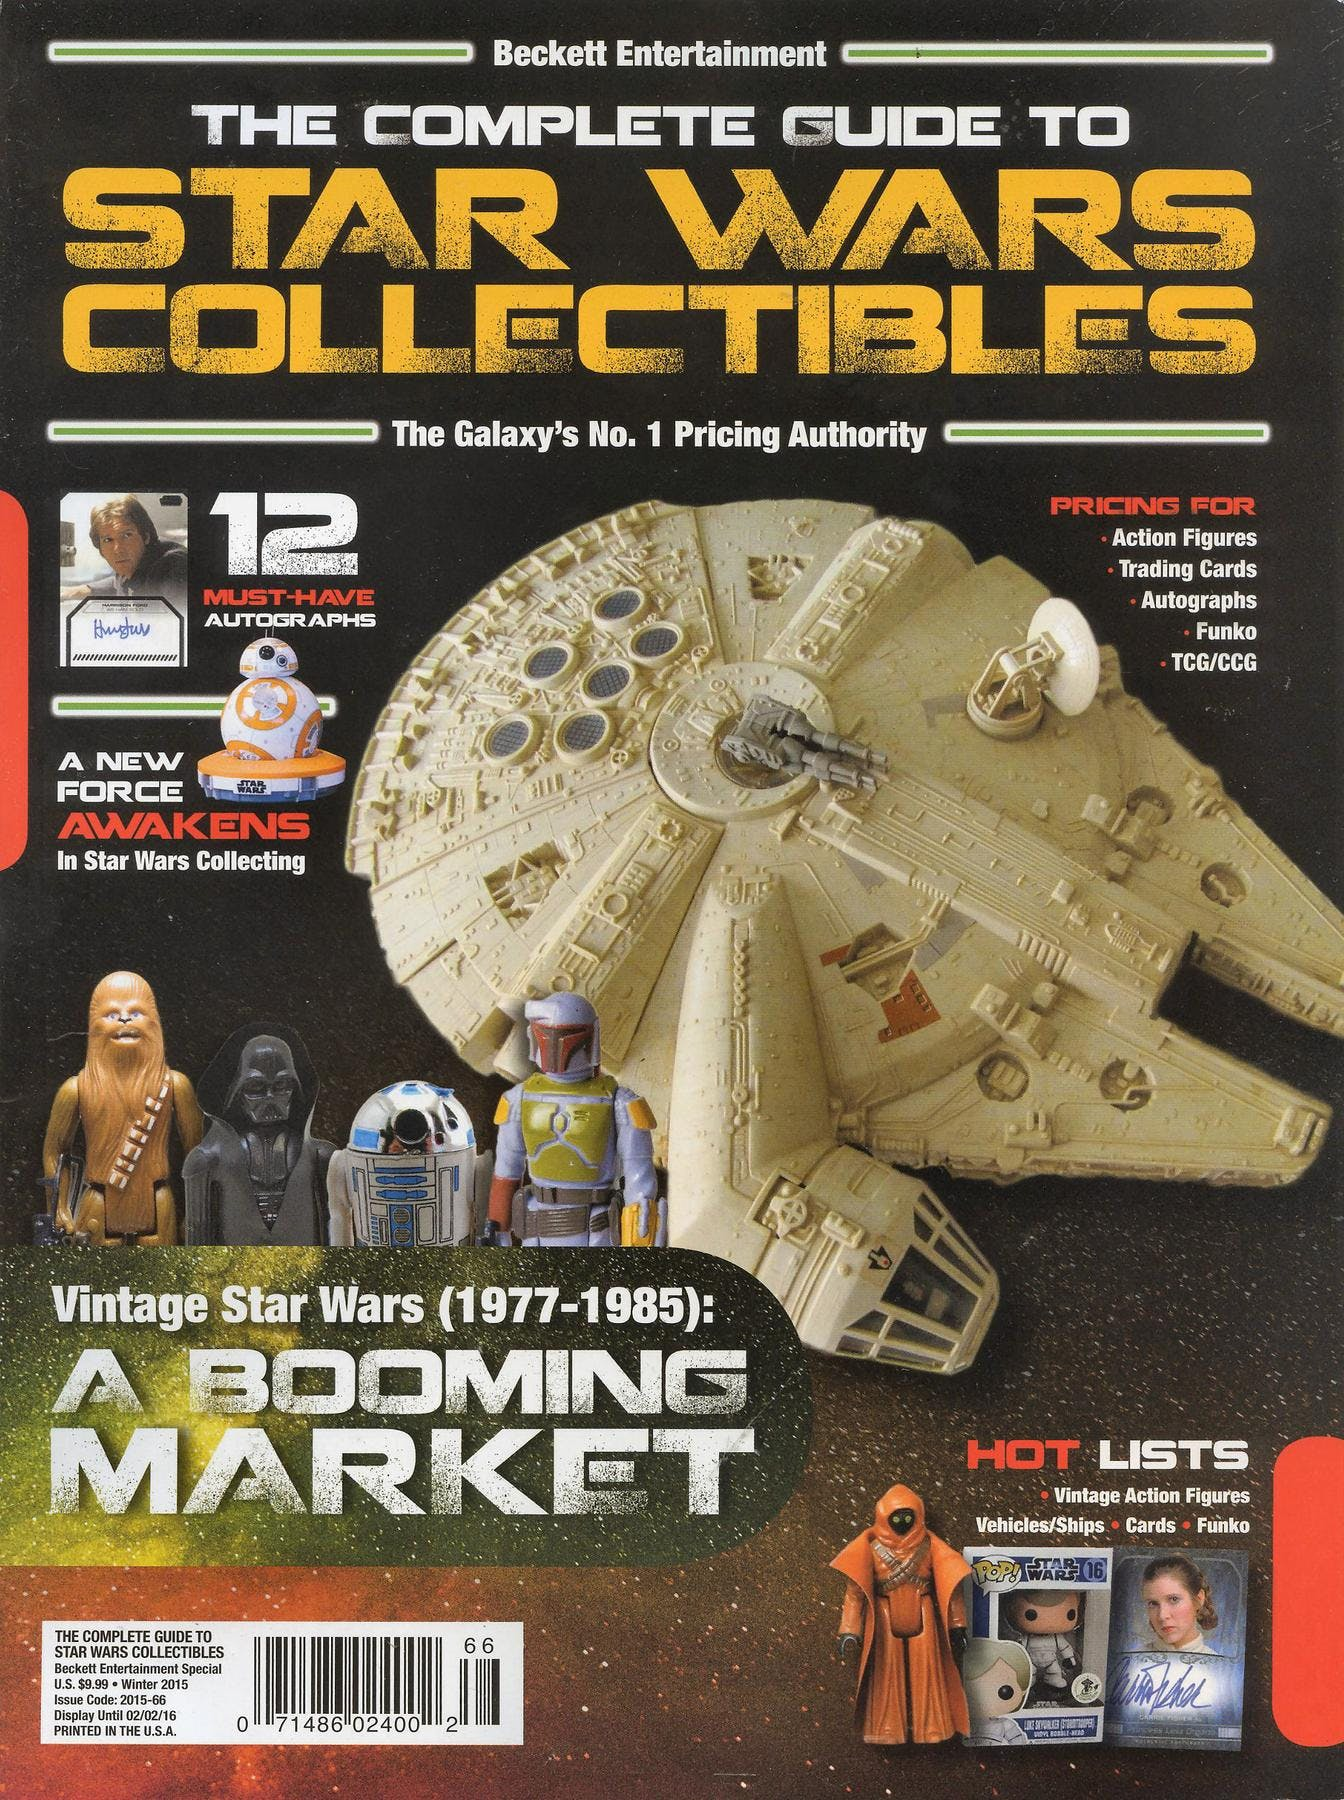 Star wars action figures collectible guides.